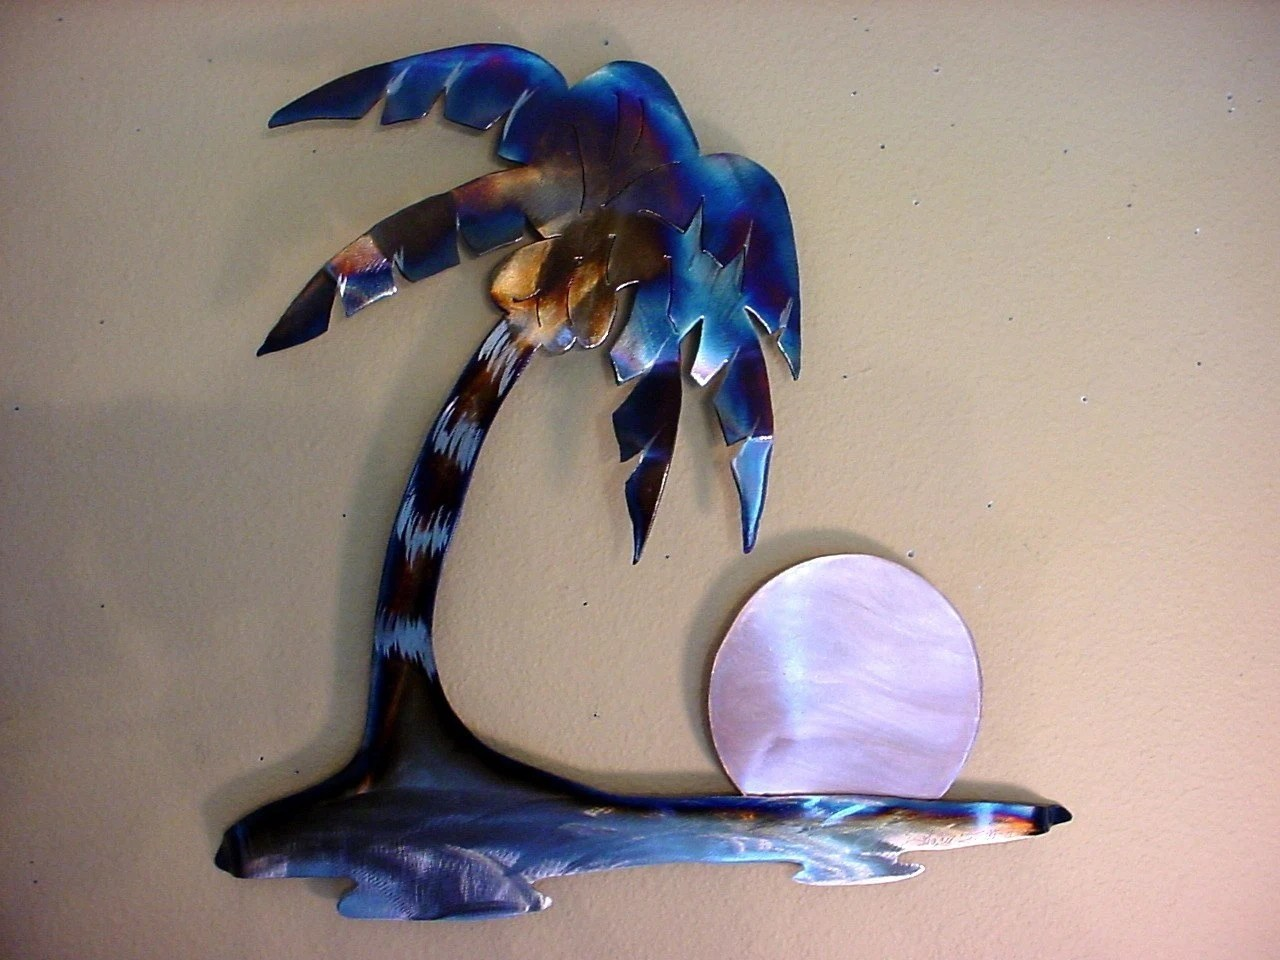 HAWAIIAN ISLAND HAWAII PALM TREE STEEL METAL WALL ART COCONUT